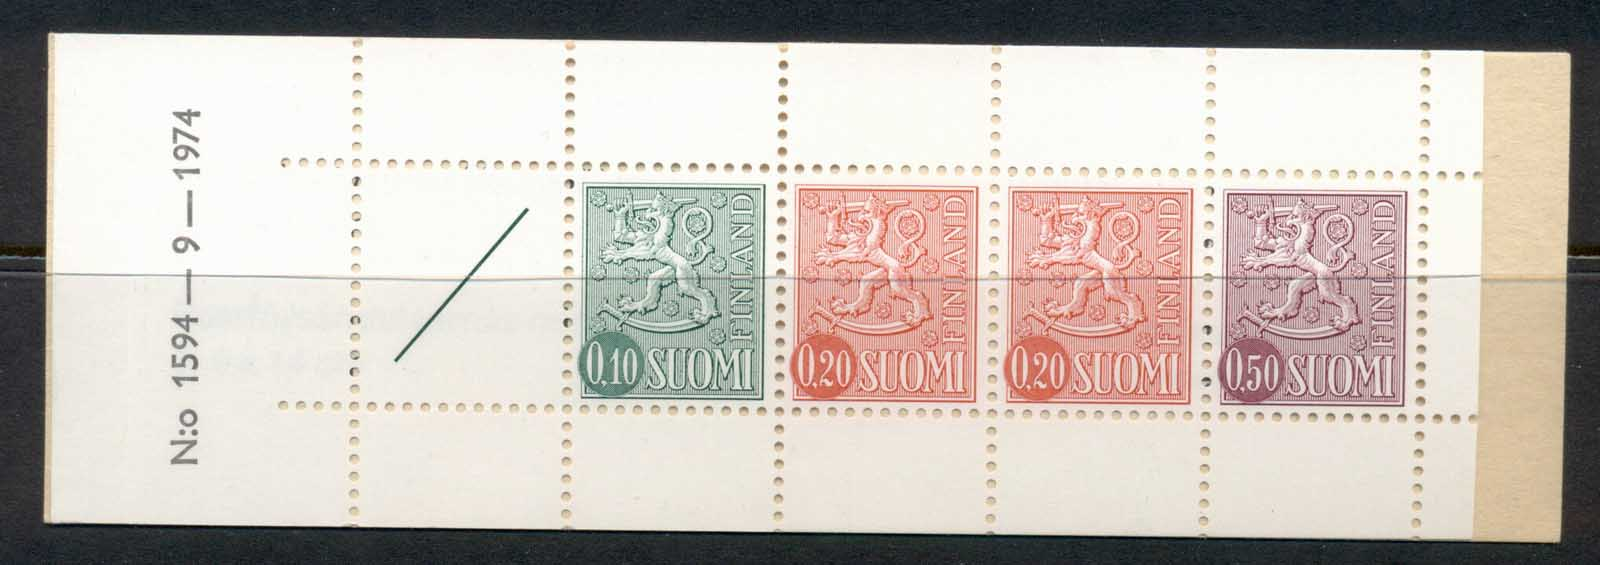 Finland 1968-78 Arms of Finland booklet 1x10, 2x20, 1x50, 1 label green cover '74 MUH